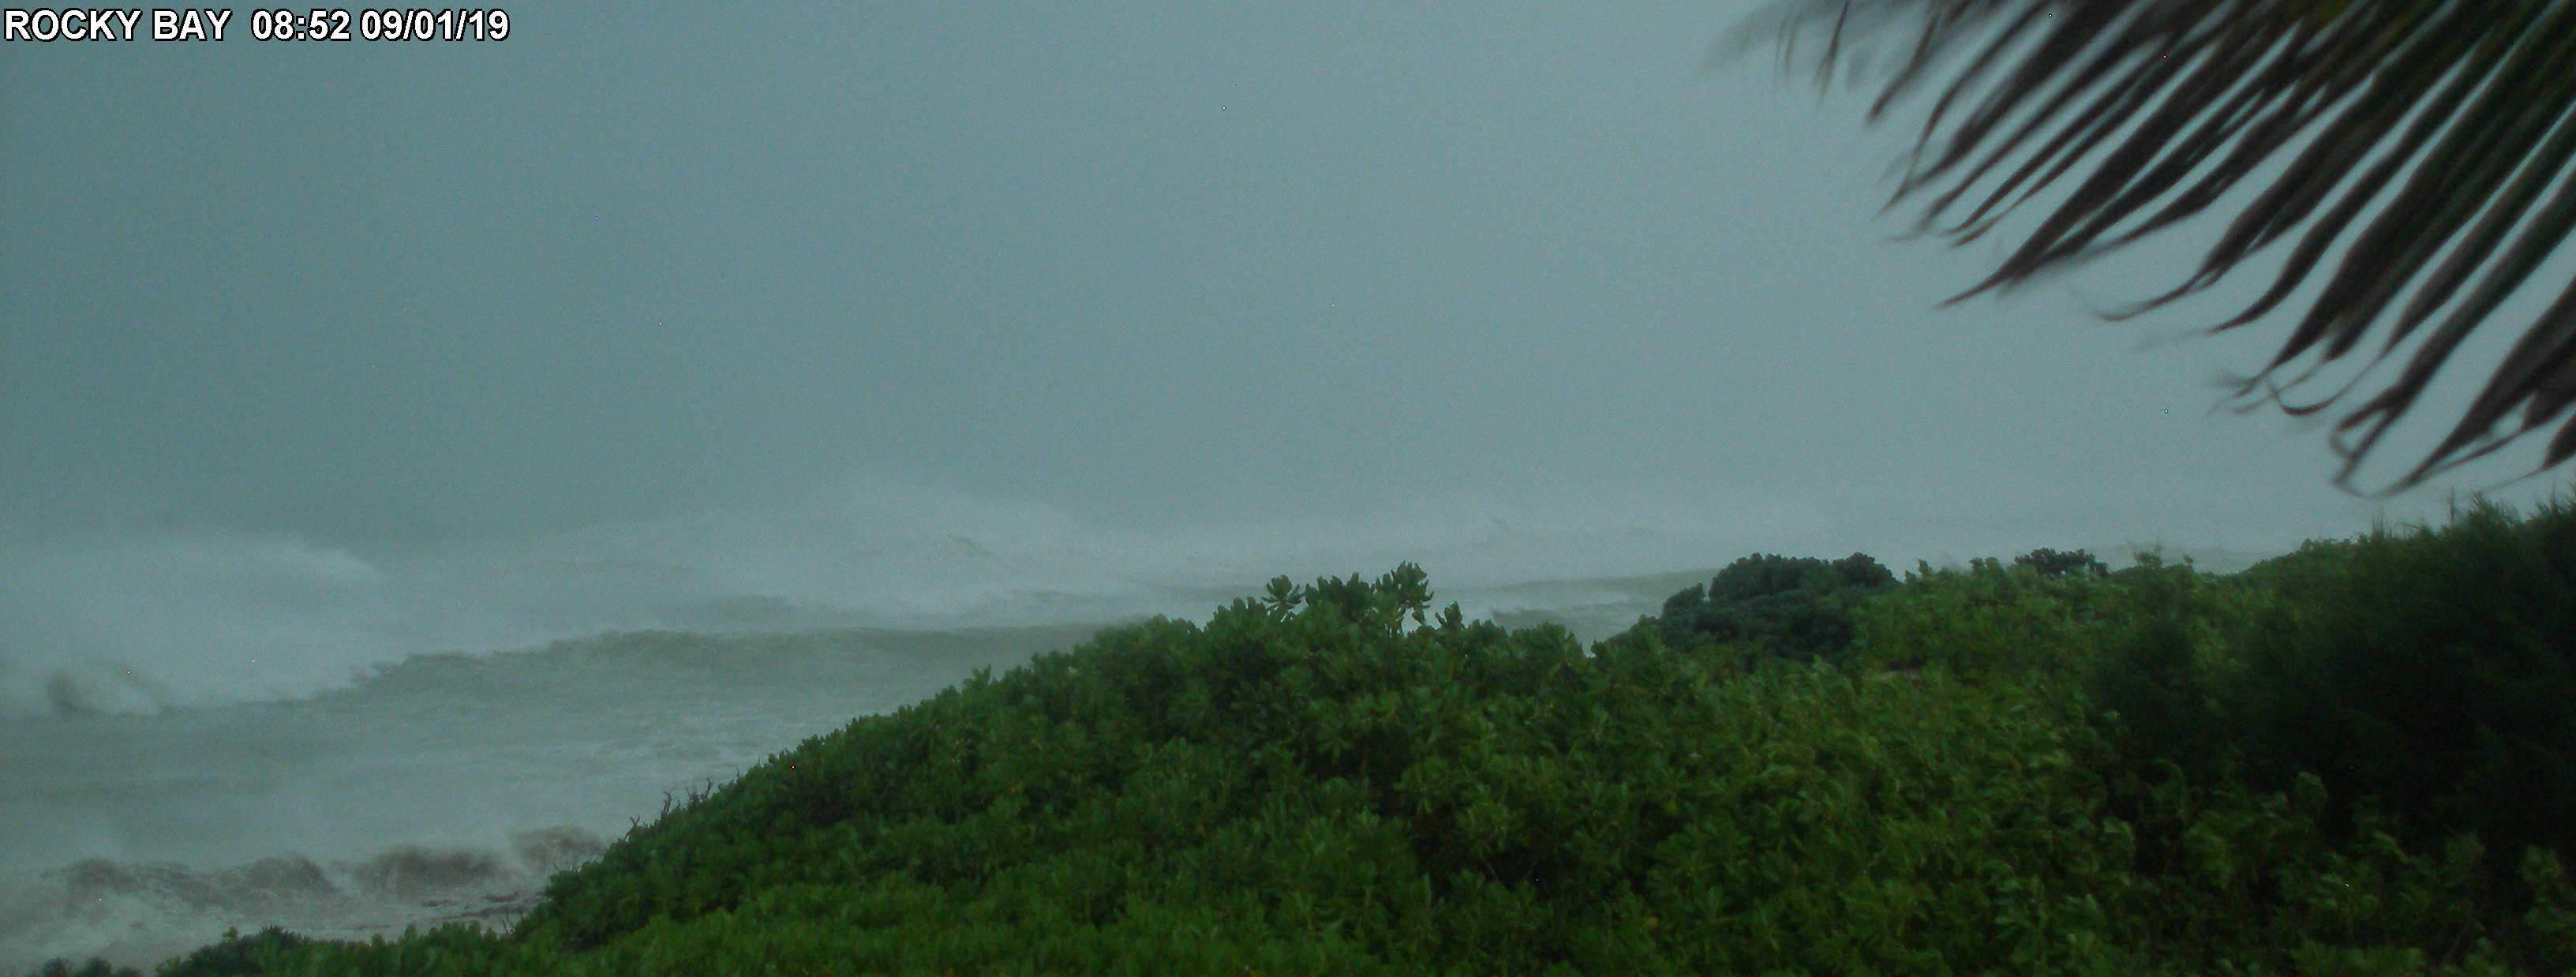 Hurricane Dorian in the ABACOS